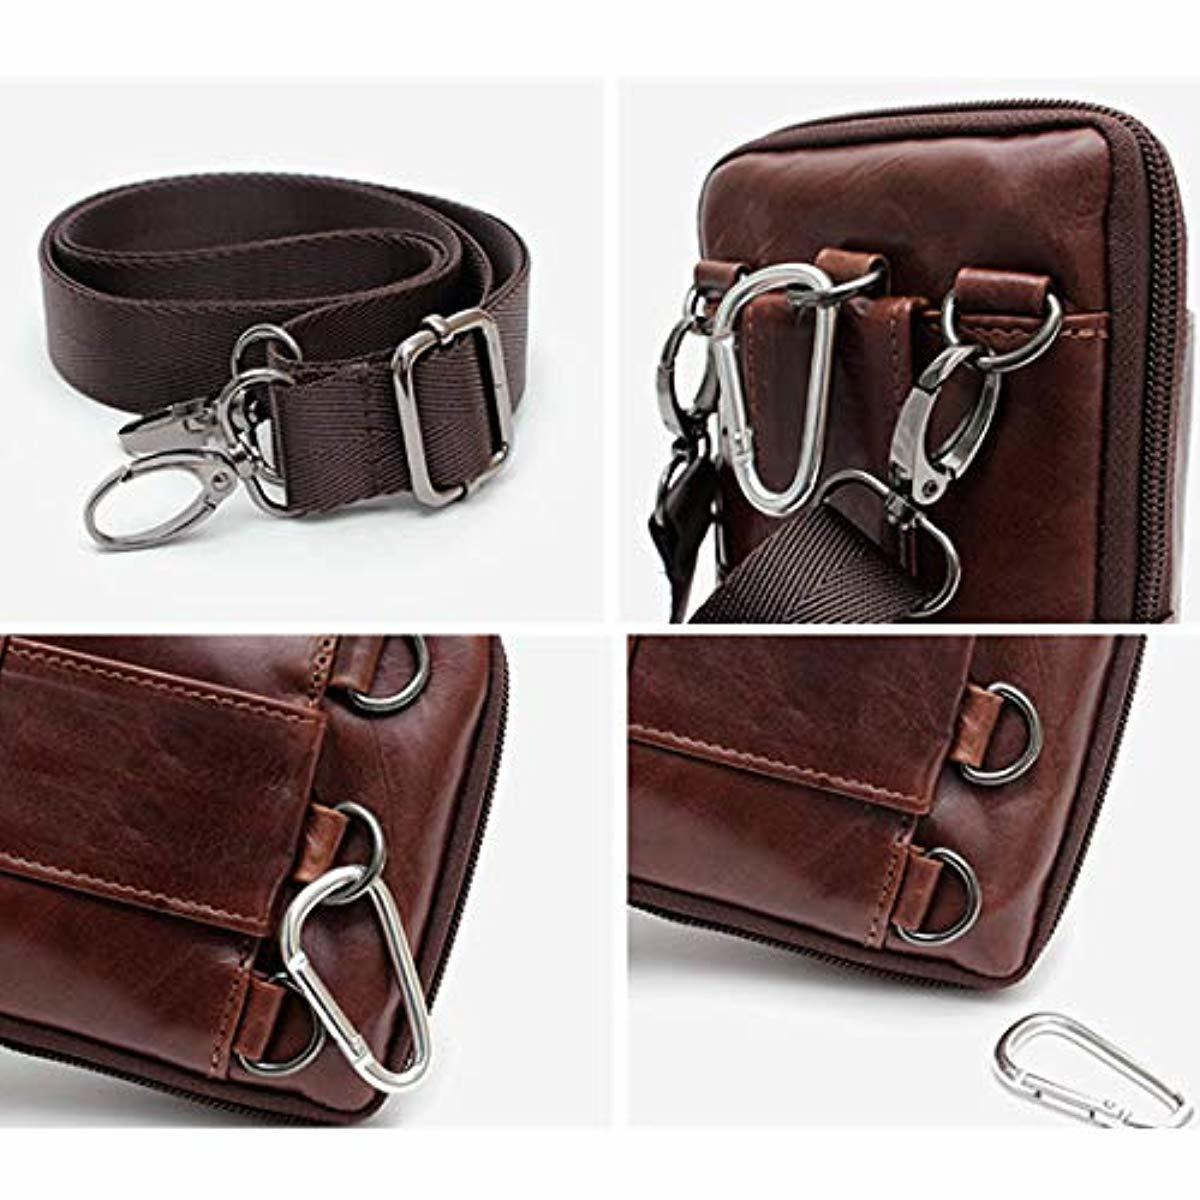 Waist Pack Travel Leather Messenger Bag Cellphone Phone Cases Pouch Holsters 92691 - ENCACC